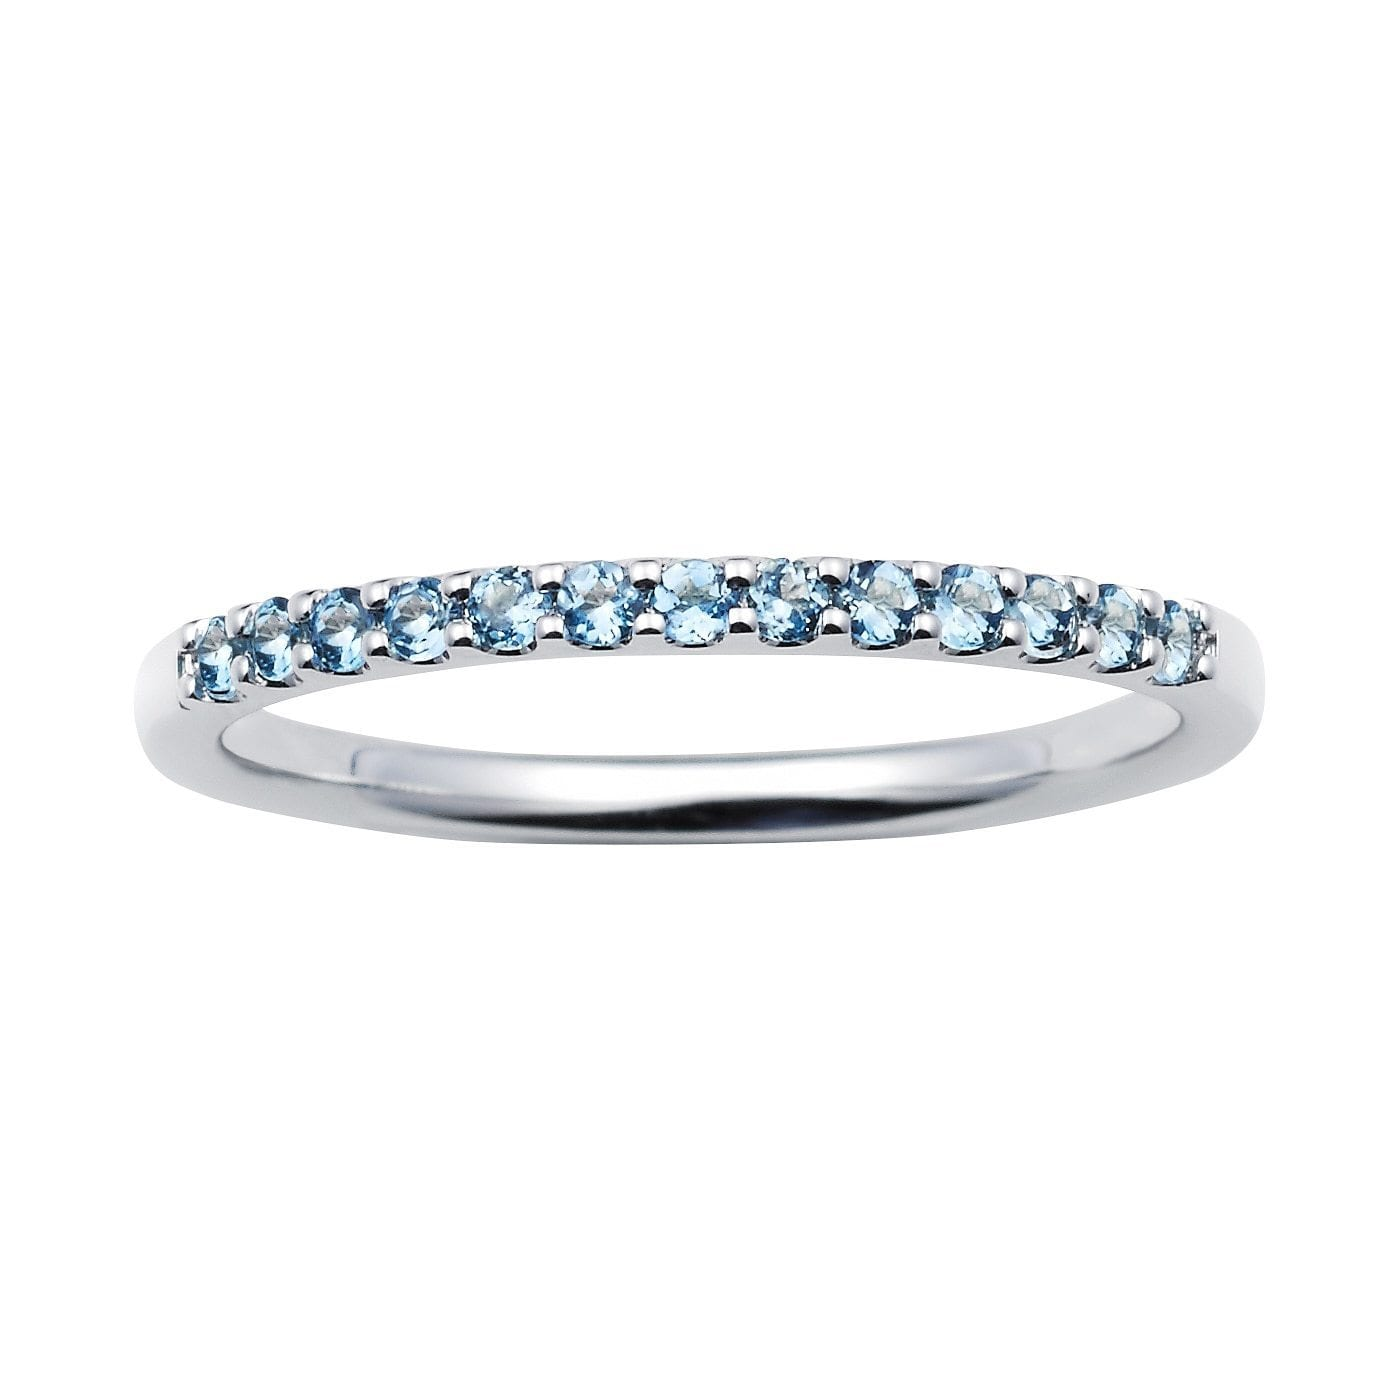 Boston Bay Diamonds 14k White Gold 1.04 Tgw. Aquamarine March Birthstone Stackable Band Ring by Overstock